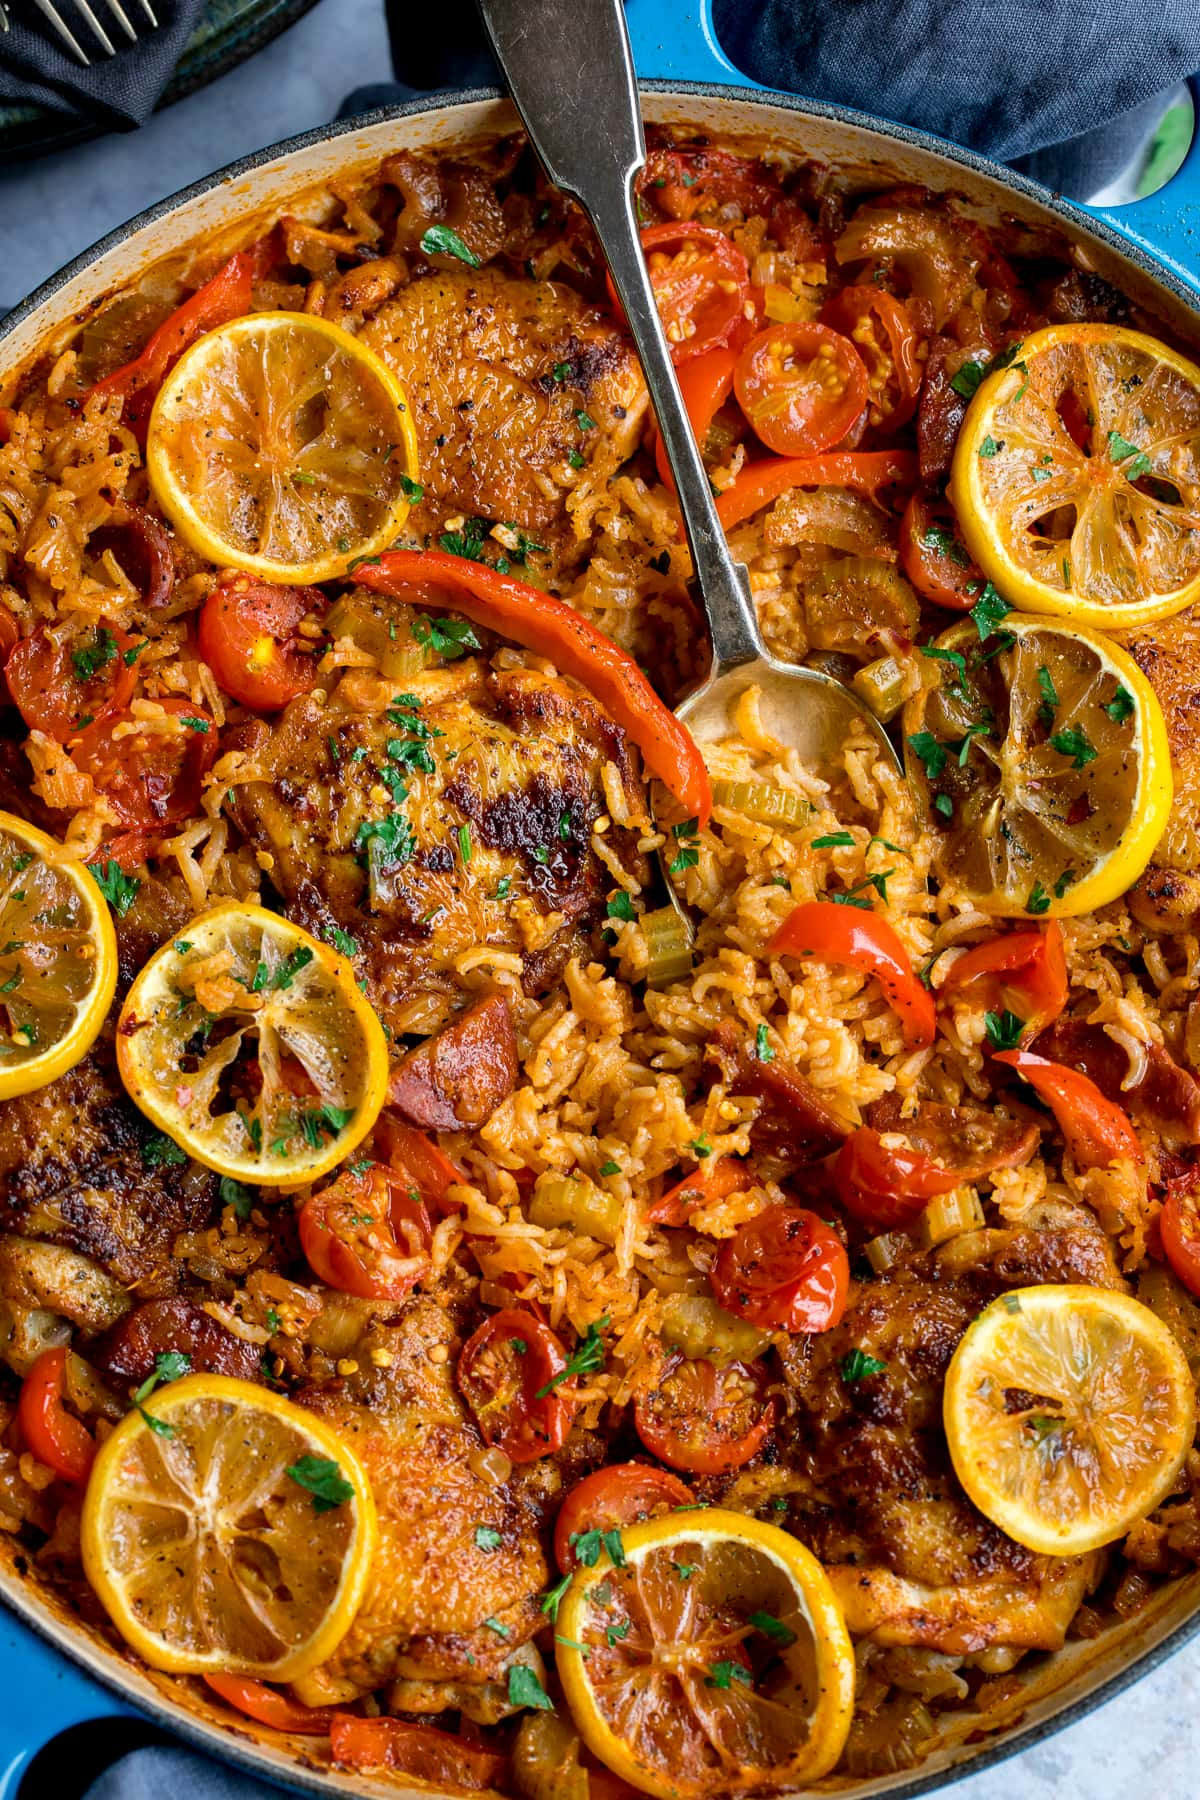 Blue pan filled with Spanish chicken and rice, topped with sliced lemons